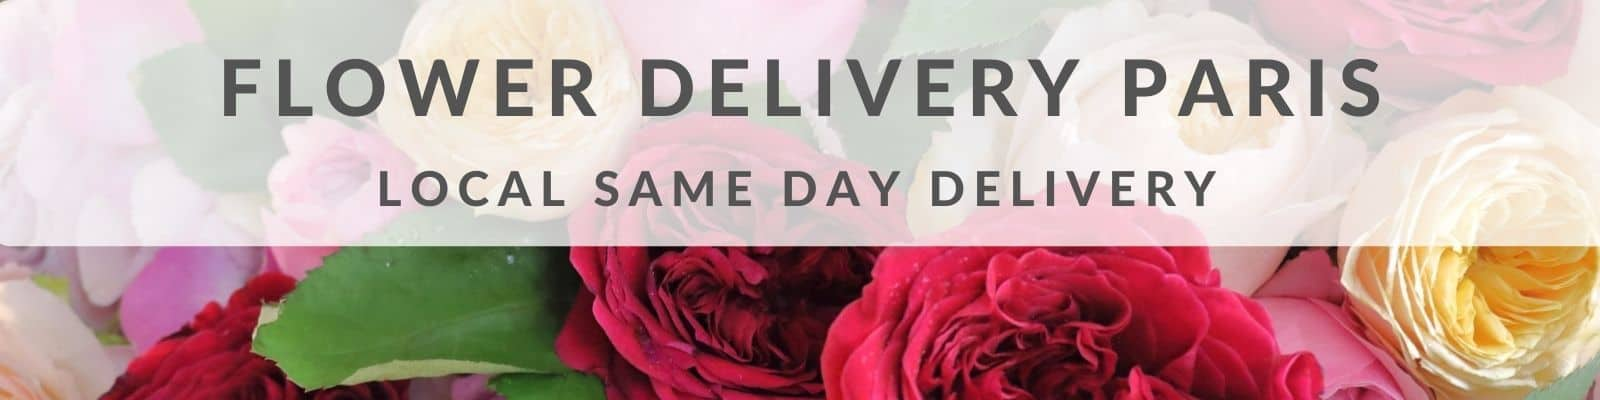 Send Flowers to Paris LOCAL SAME DAY DELIVERY